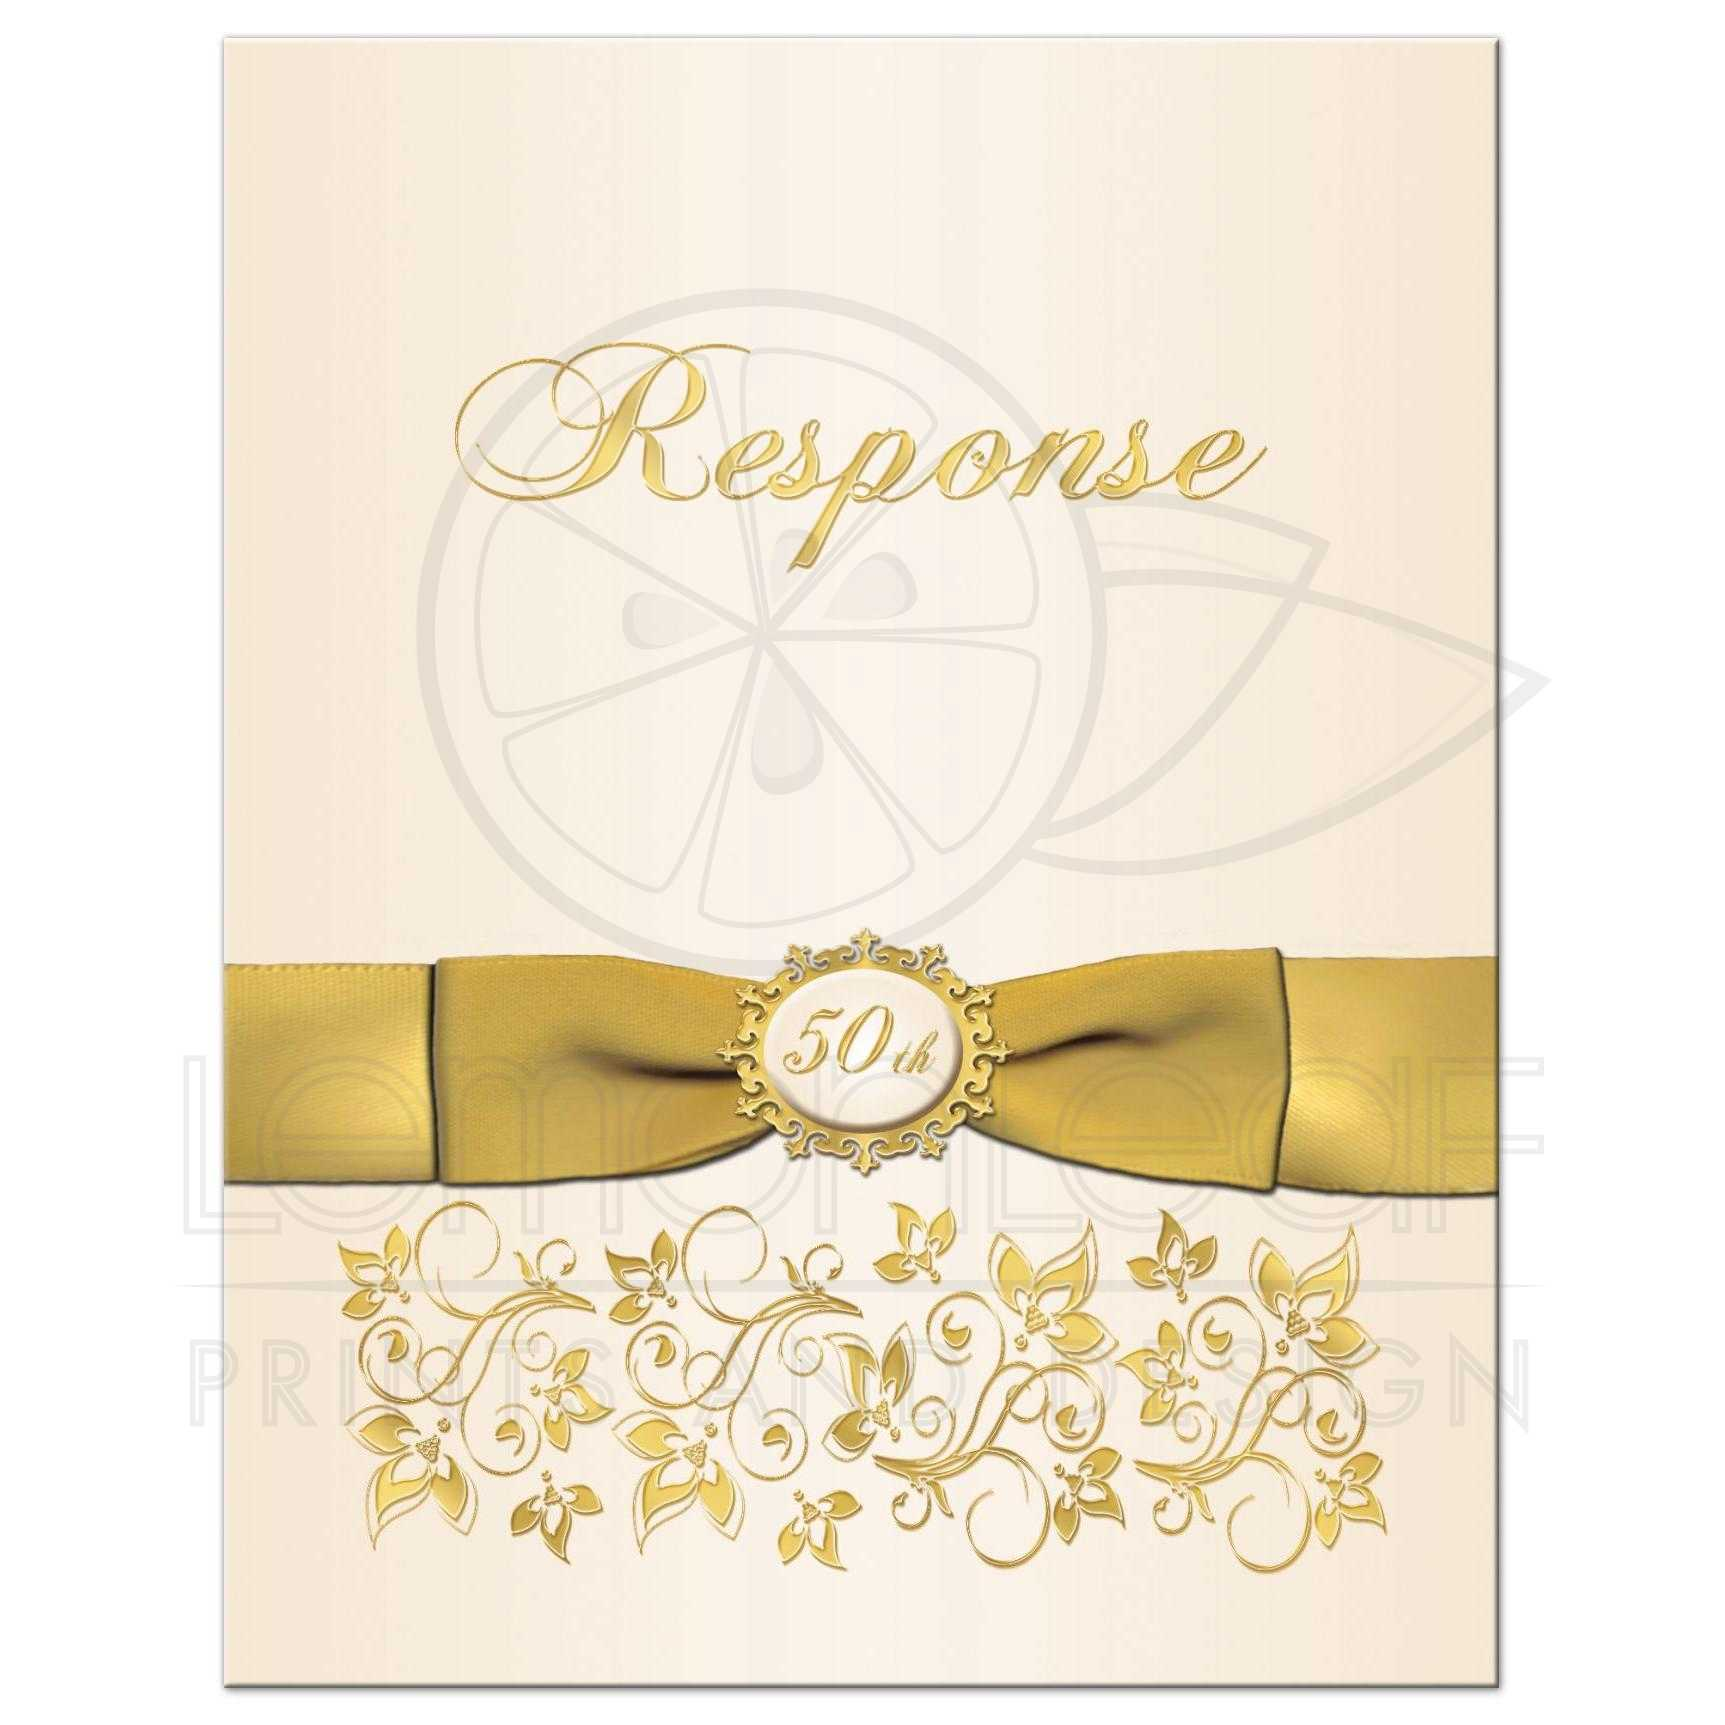 Th wedding anniversary a rsvp card ivory and gold